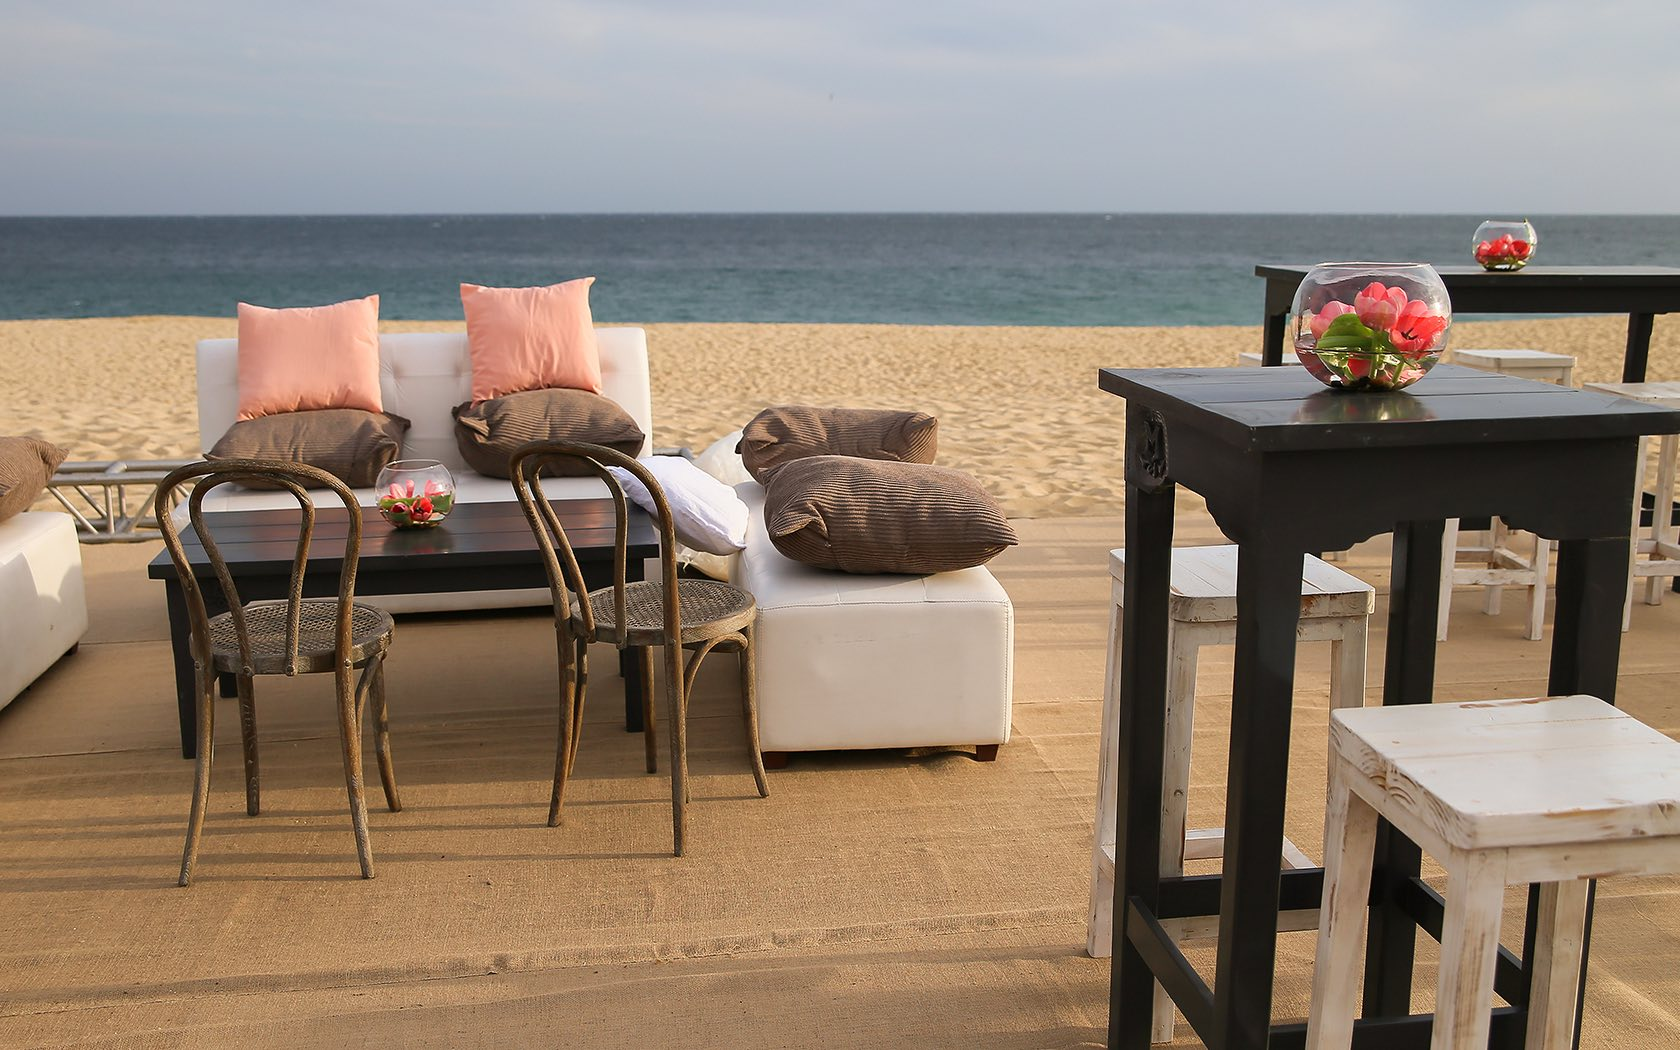 tables, couches, and chairs on beach